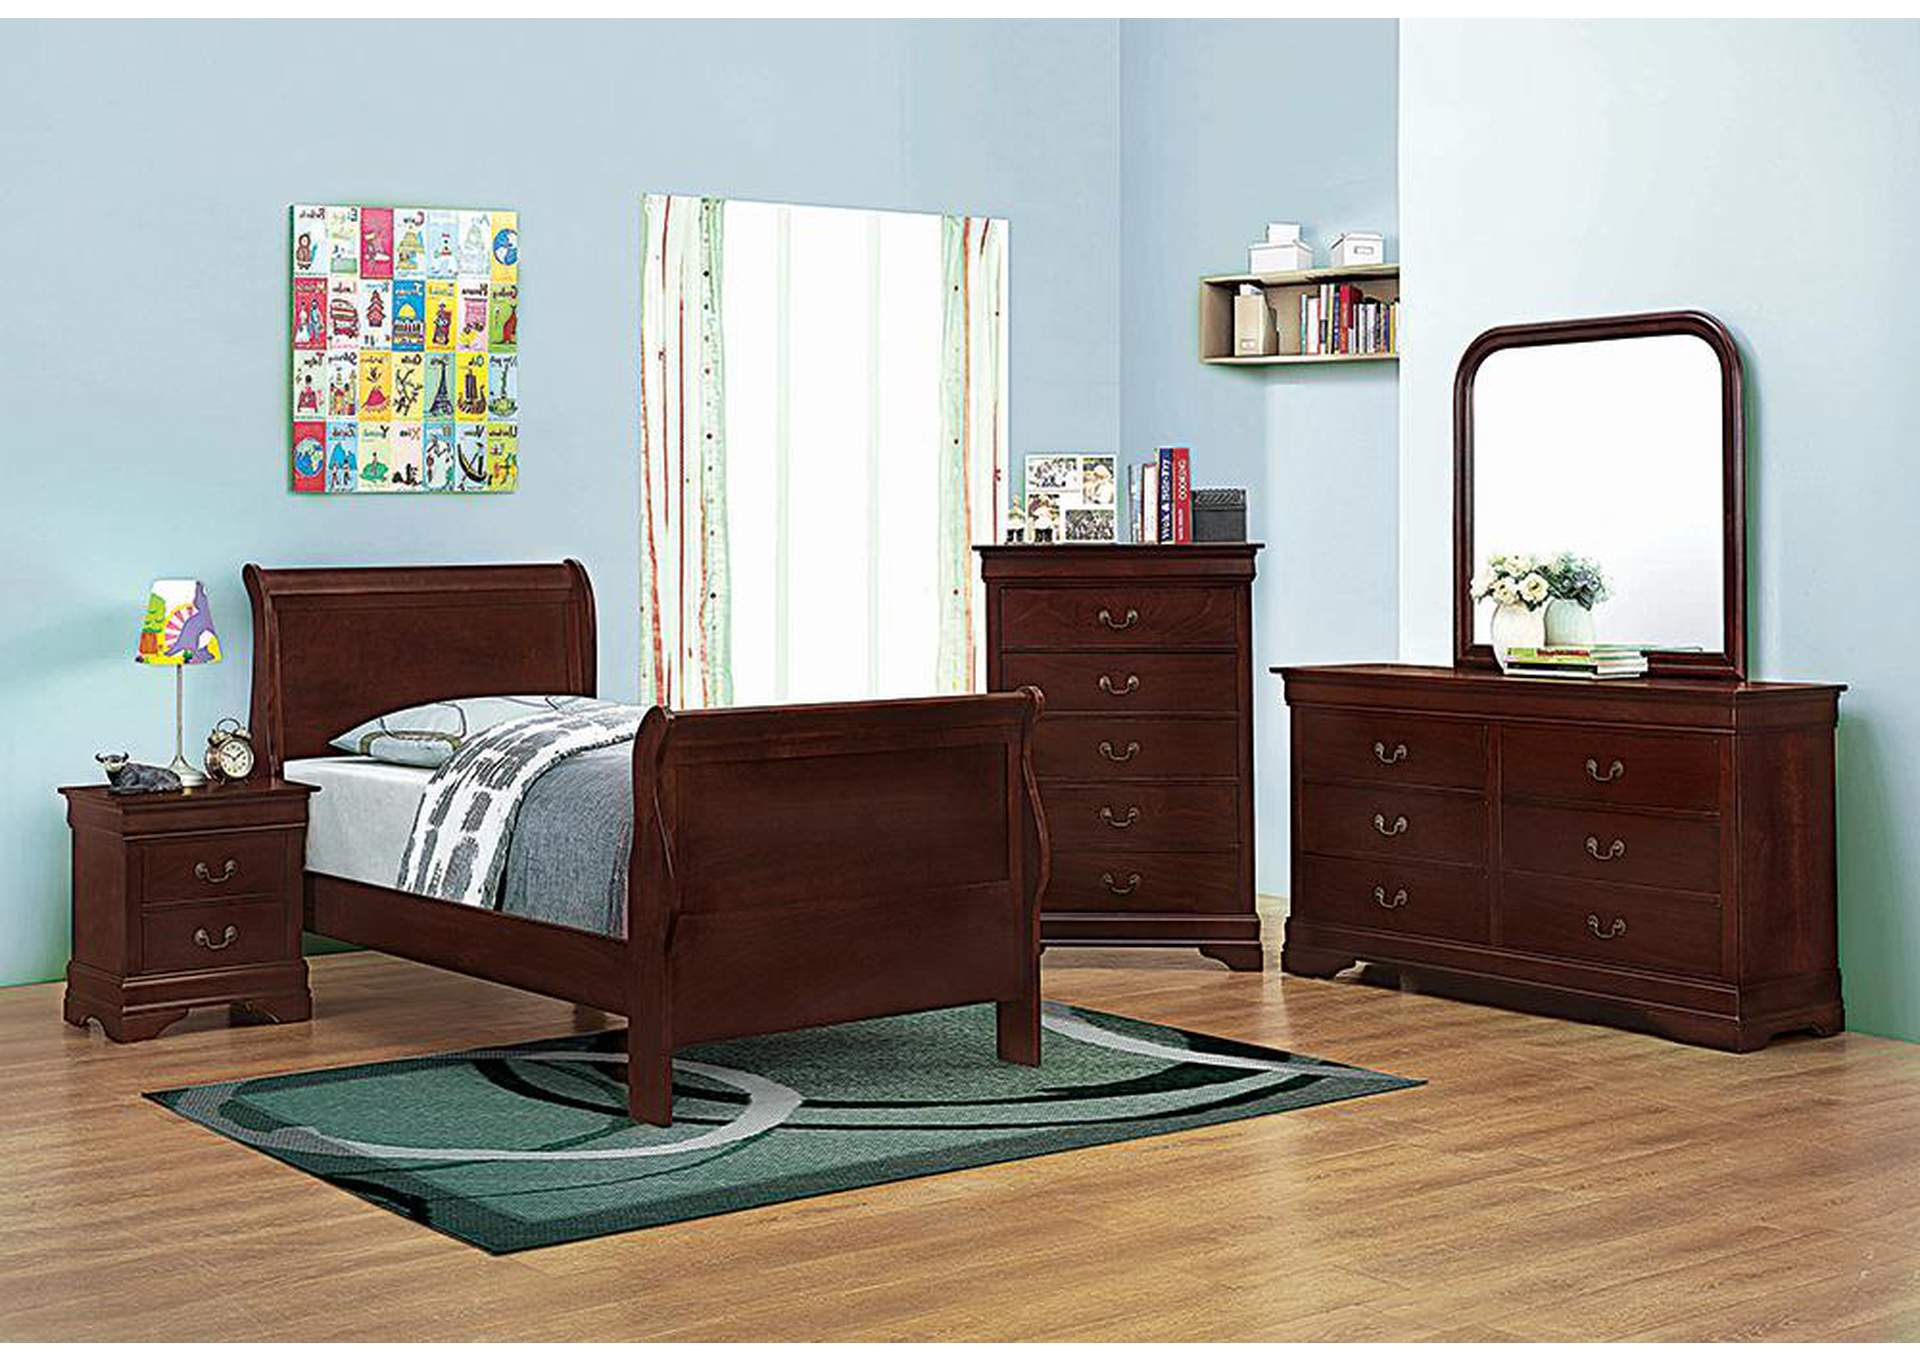 Harlem Furniture Cherry Twin Bed